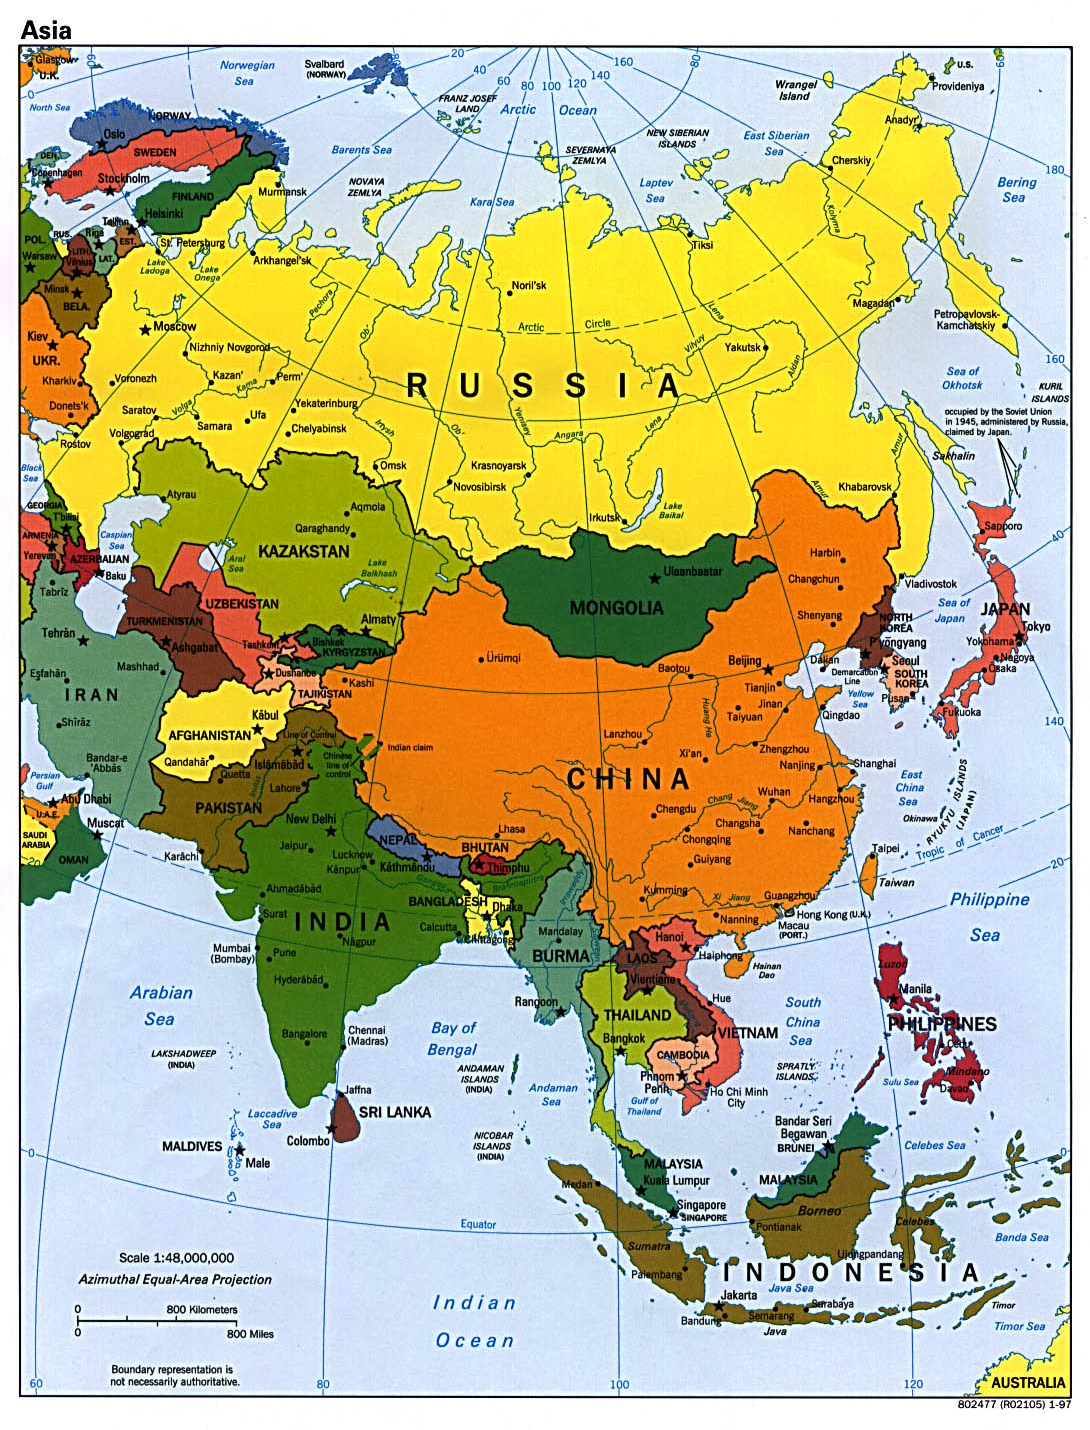 Map Of Asia Hd Image.Maps Of Asia And Asia Countries Political Maps Administrative And